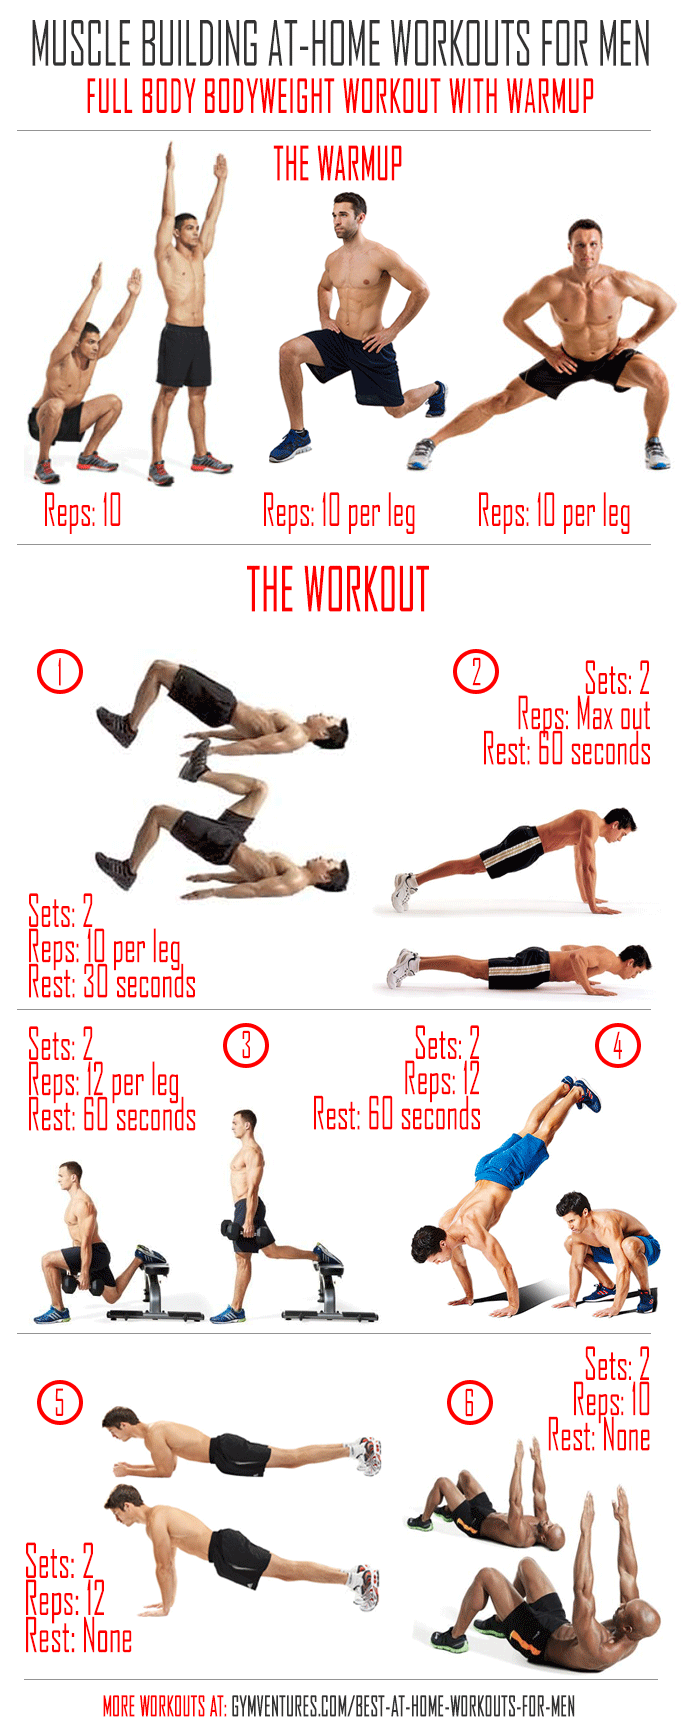 At Home Workouts For Men 10 Muscle Building Workouts Full Body Bodyweight Workout Home Workout Men Bodyweight Workout